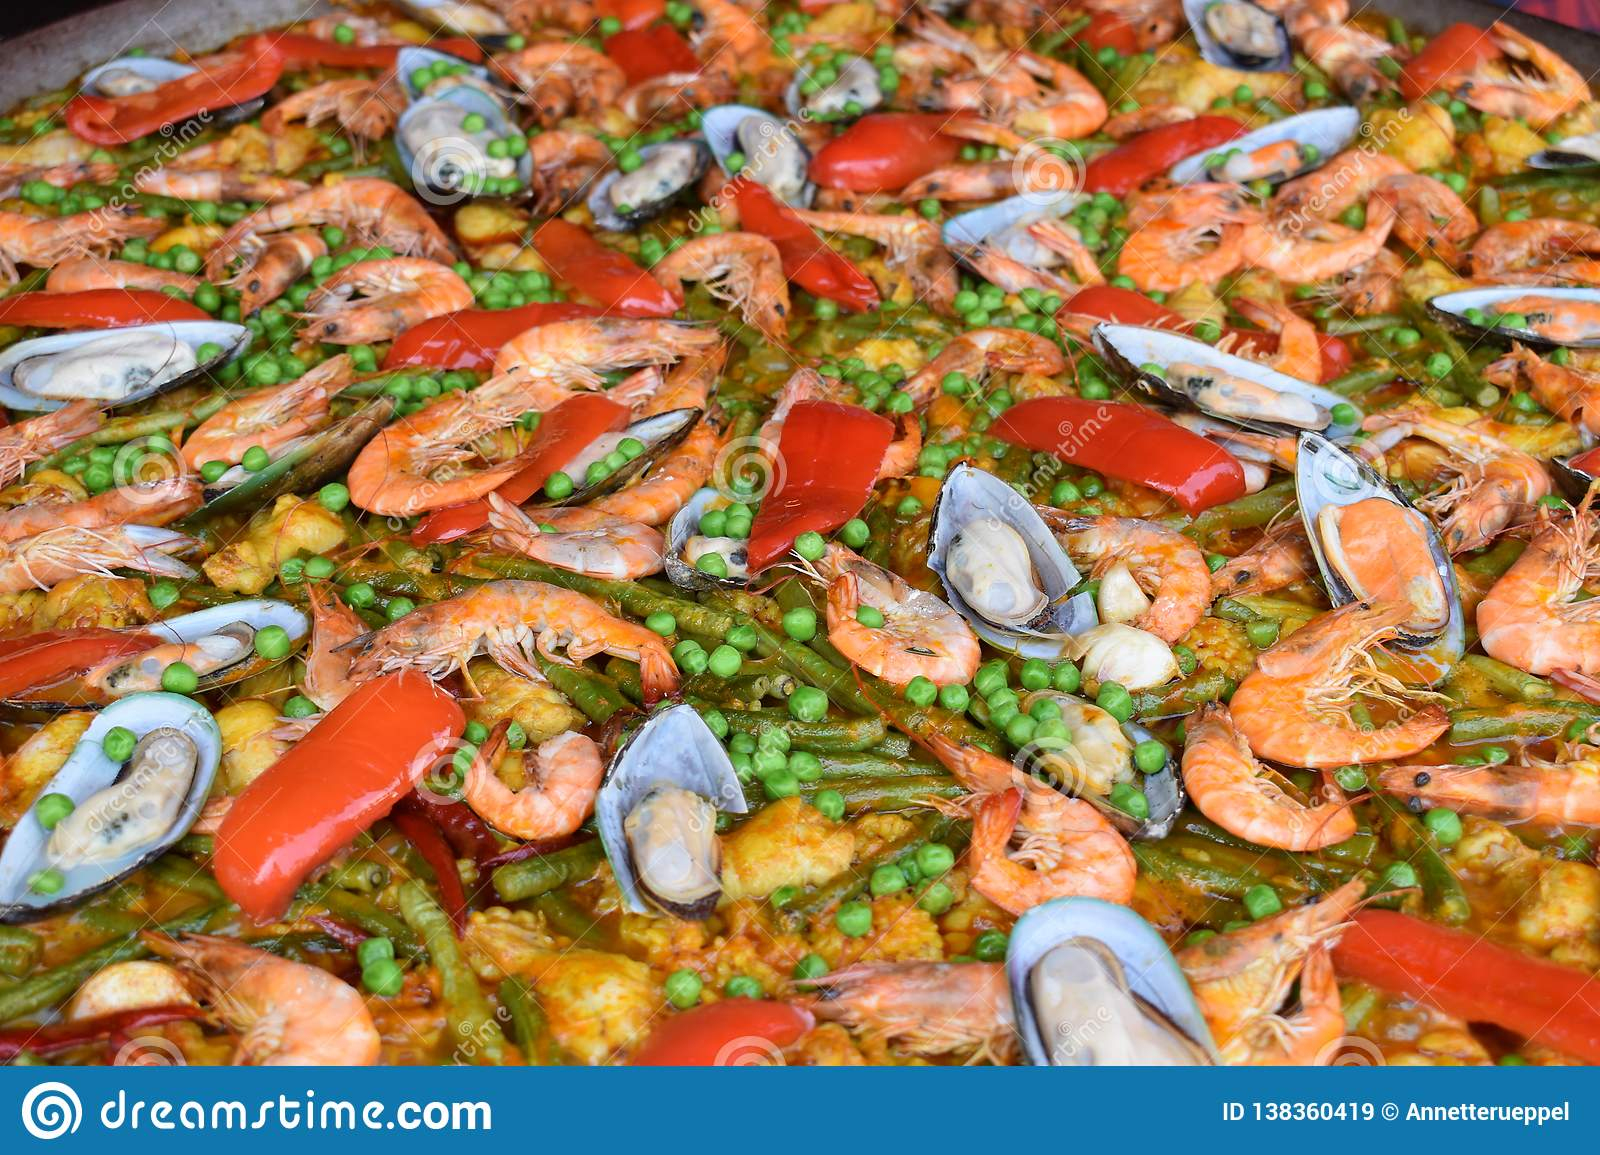 Fresh paella – a rice dish with vegetables and fresh seafood- on a food market